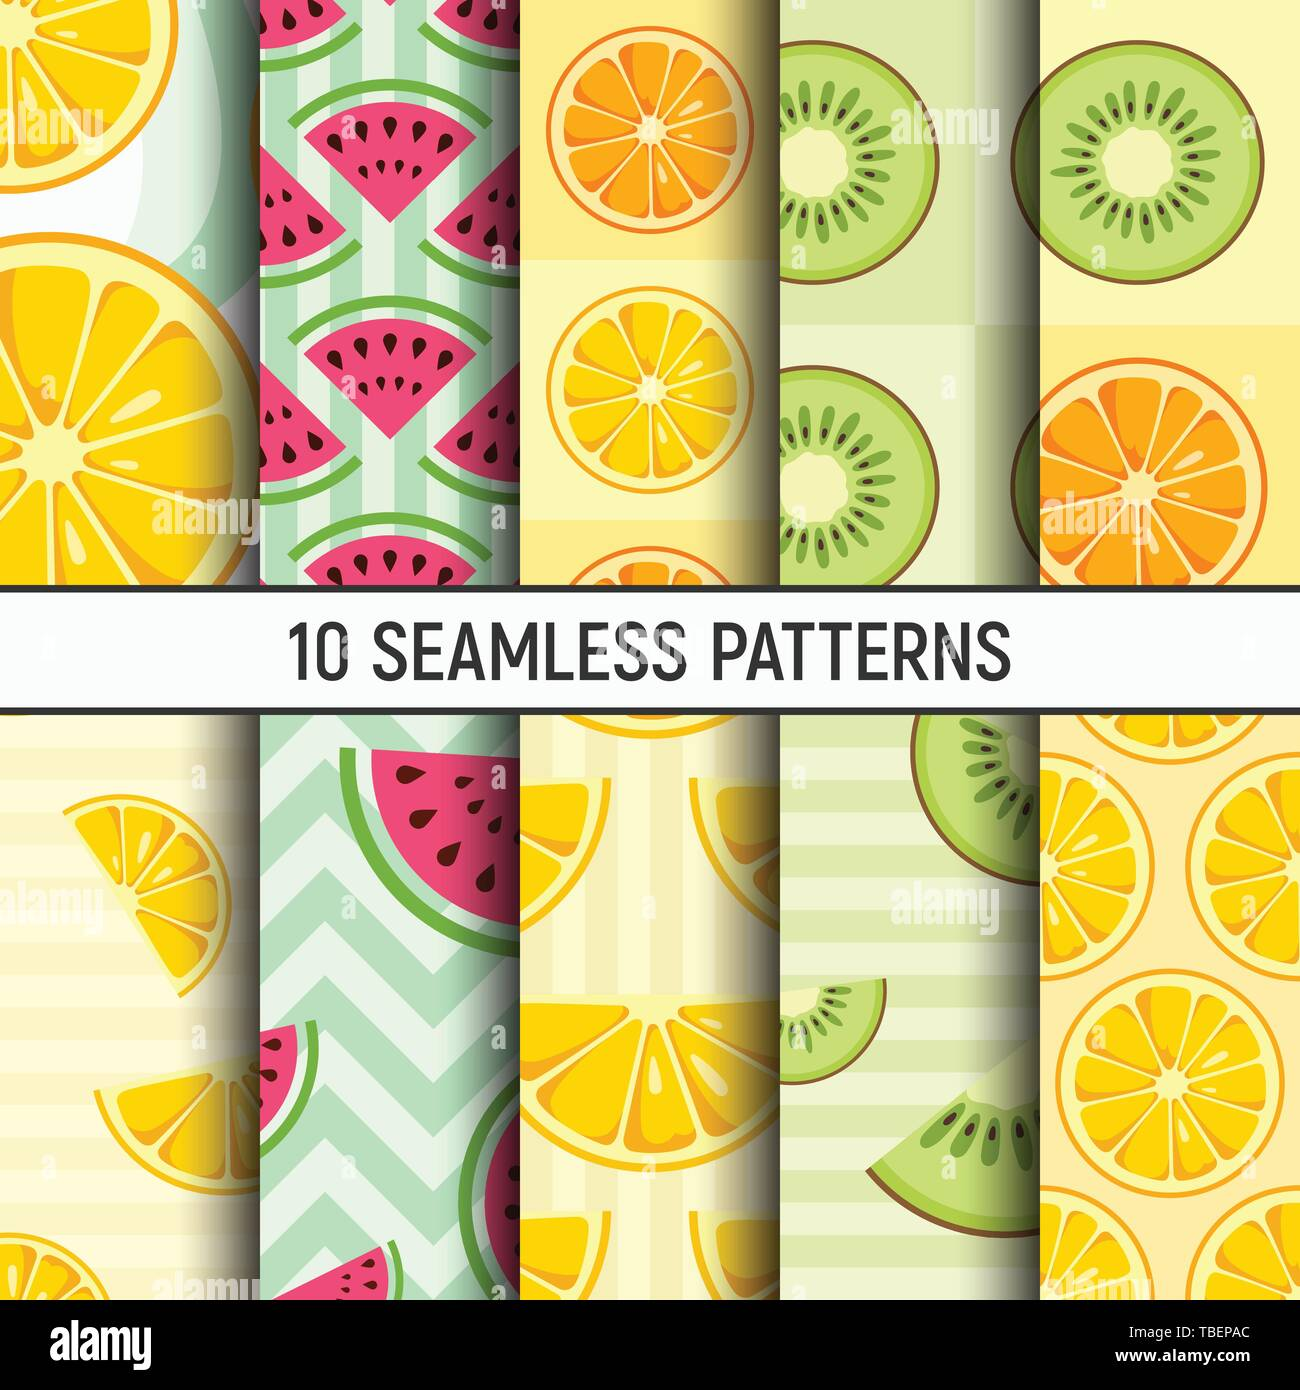 Set of ten lemon, orange, kiwi, watermelon slices seamless patterns. Cute style. Citrus fruits, Summer bright colors, juicy fresh backgrounds. - Stock Image